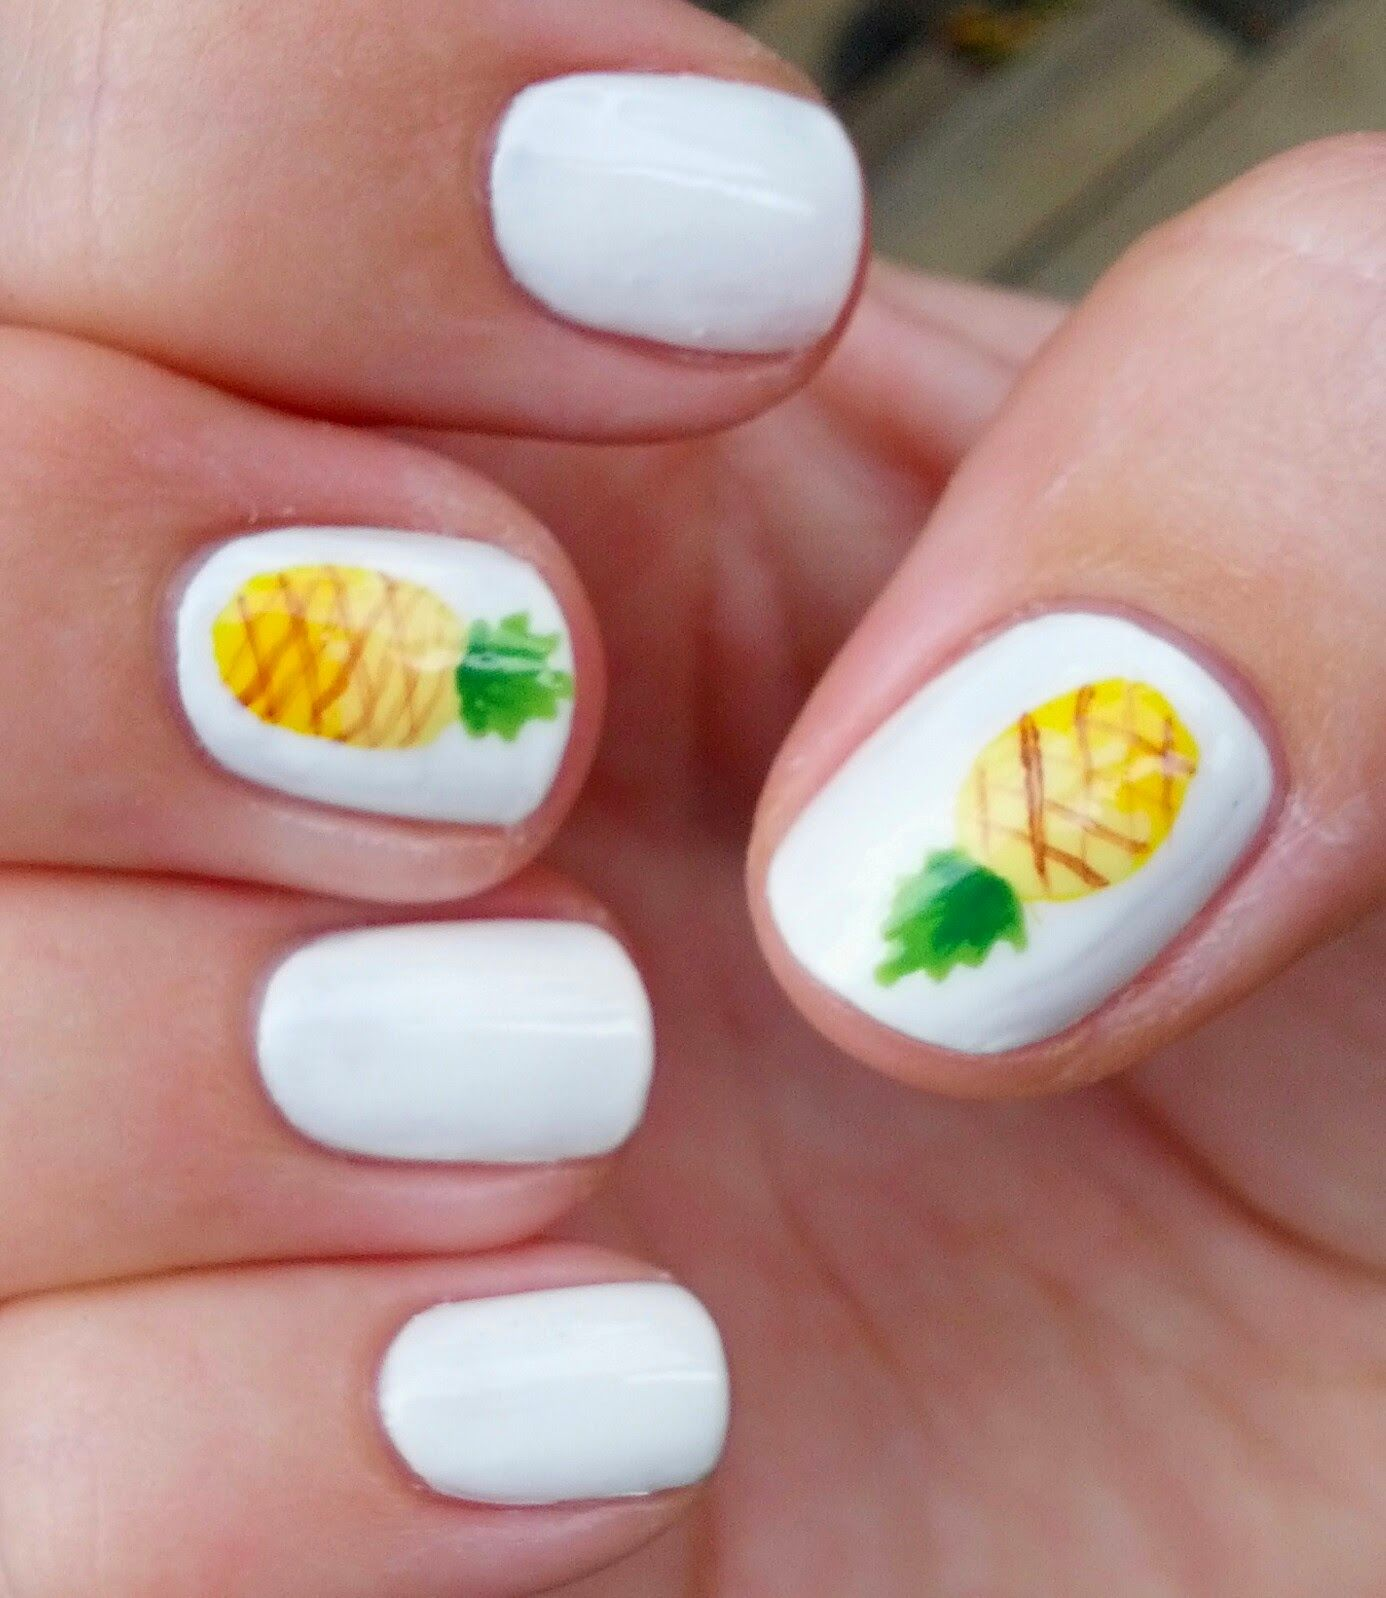 StephsNailss: Pineapple Nails and pictorial - StephsNailss: Pineapple Nails And Pictorial Nails Pinterest